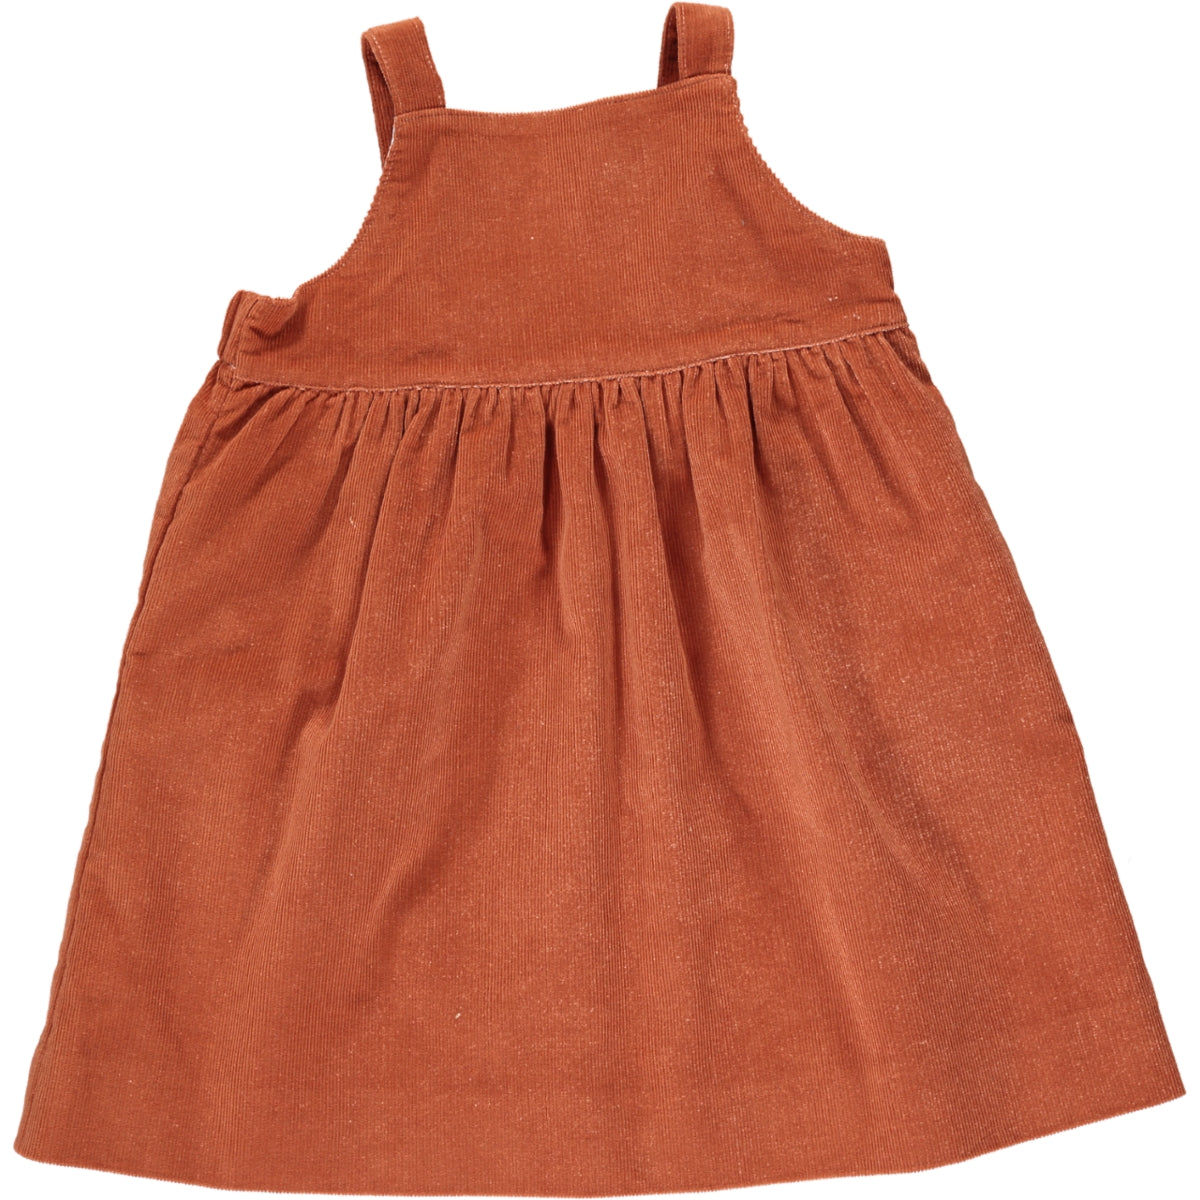 Pichi Strap Dress Burnt Orange